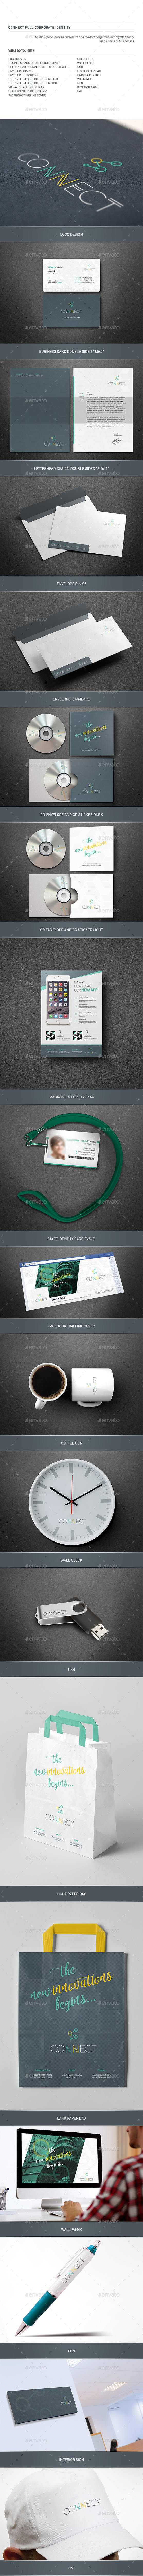 Connect Full Corporate Identity - Stationery Print Templates